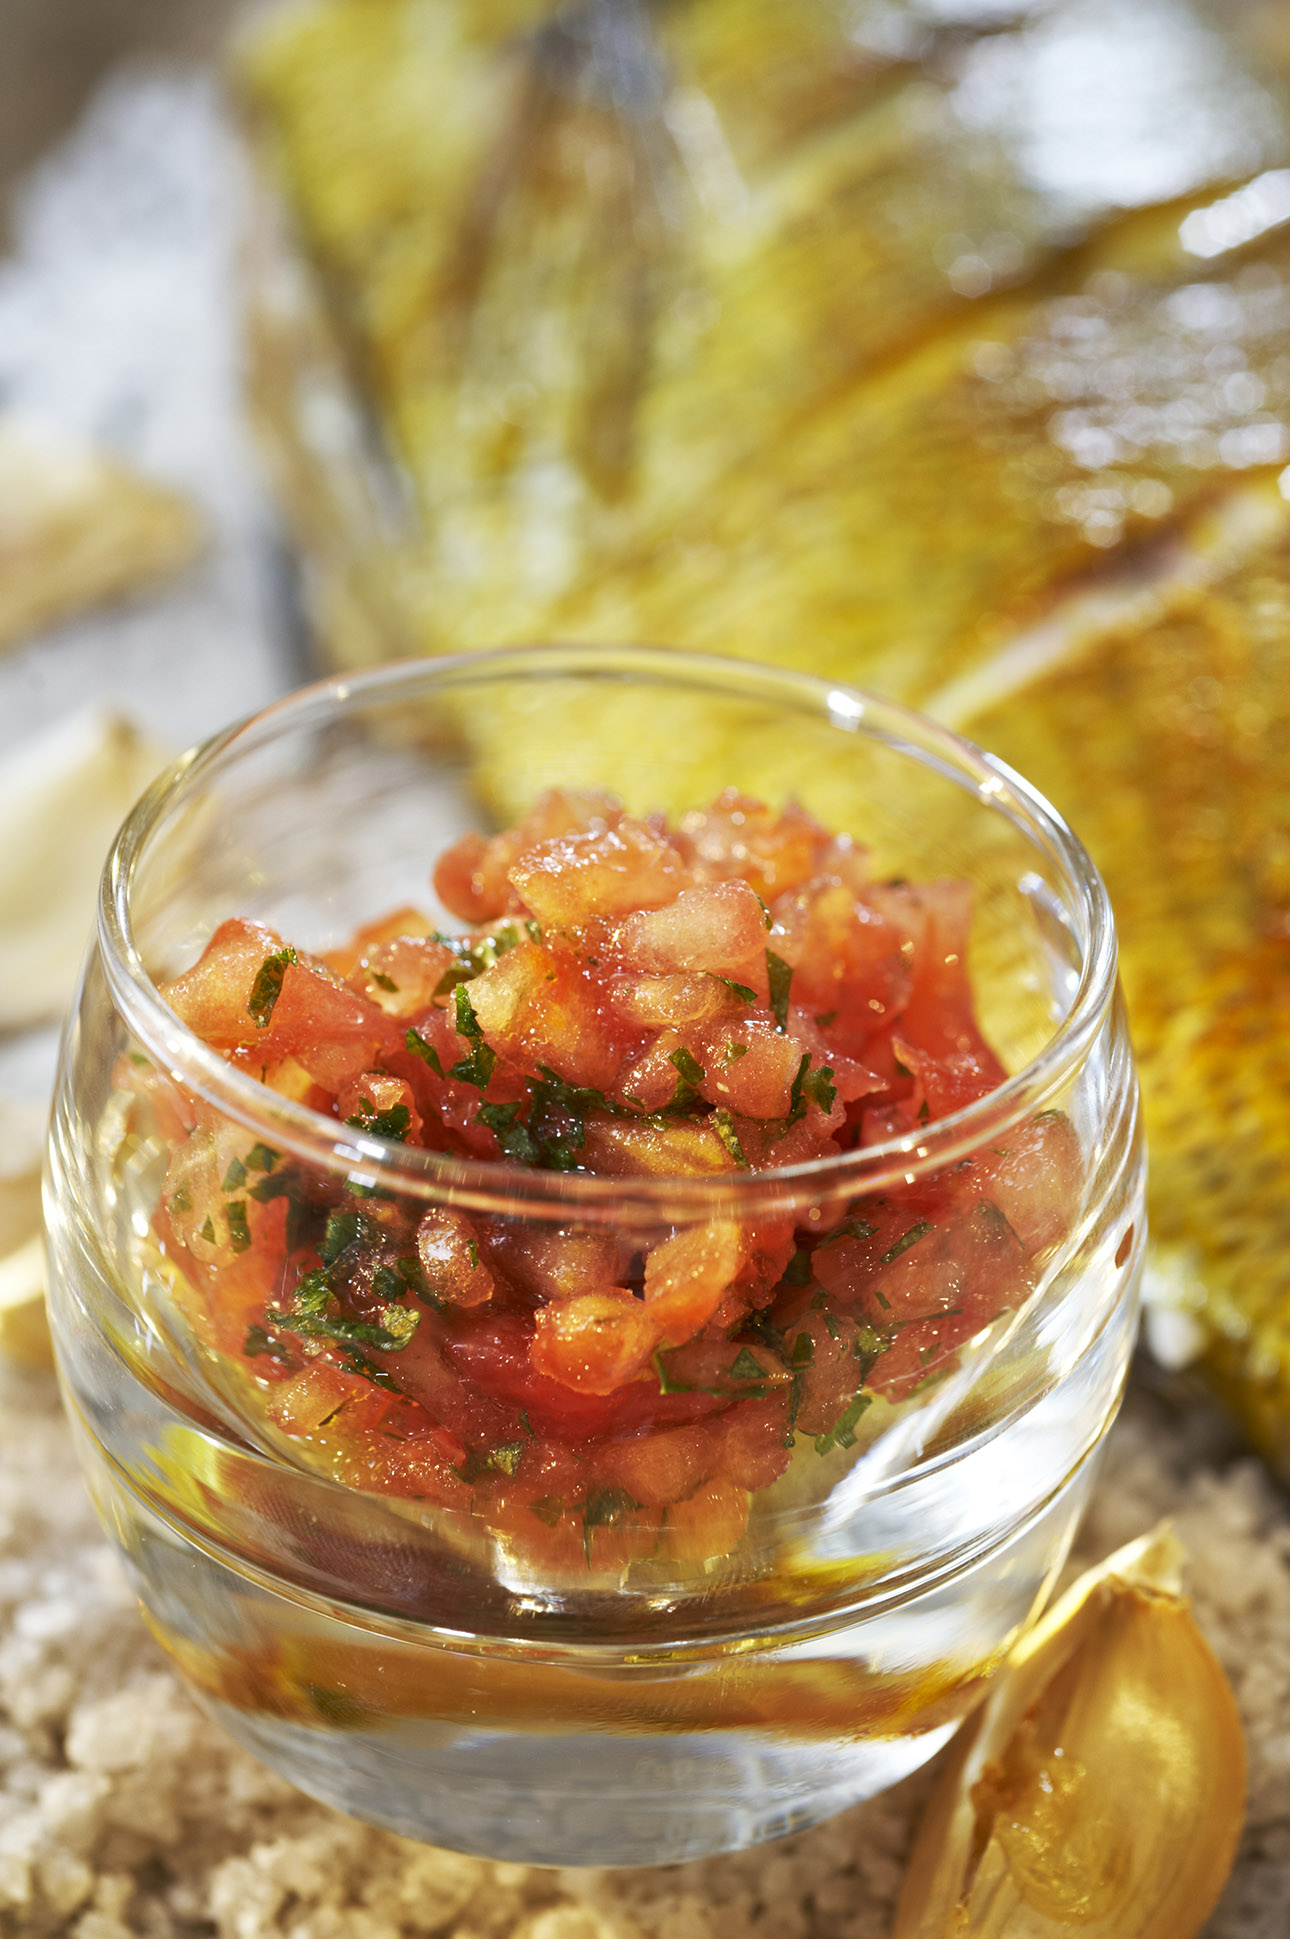 photo culinaire tomate, fines herbes et poisson